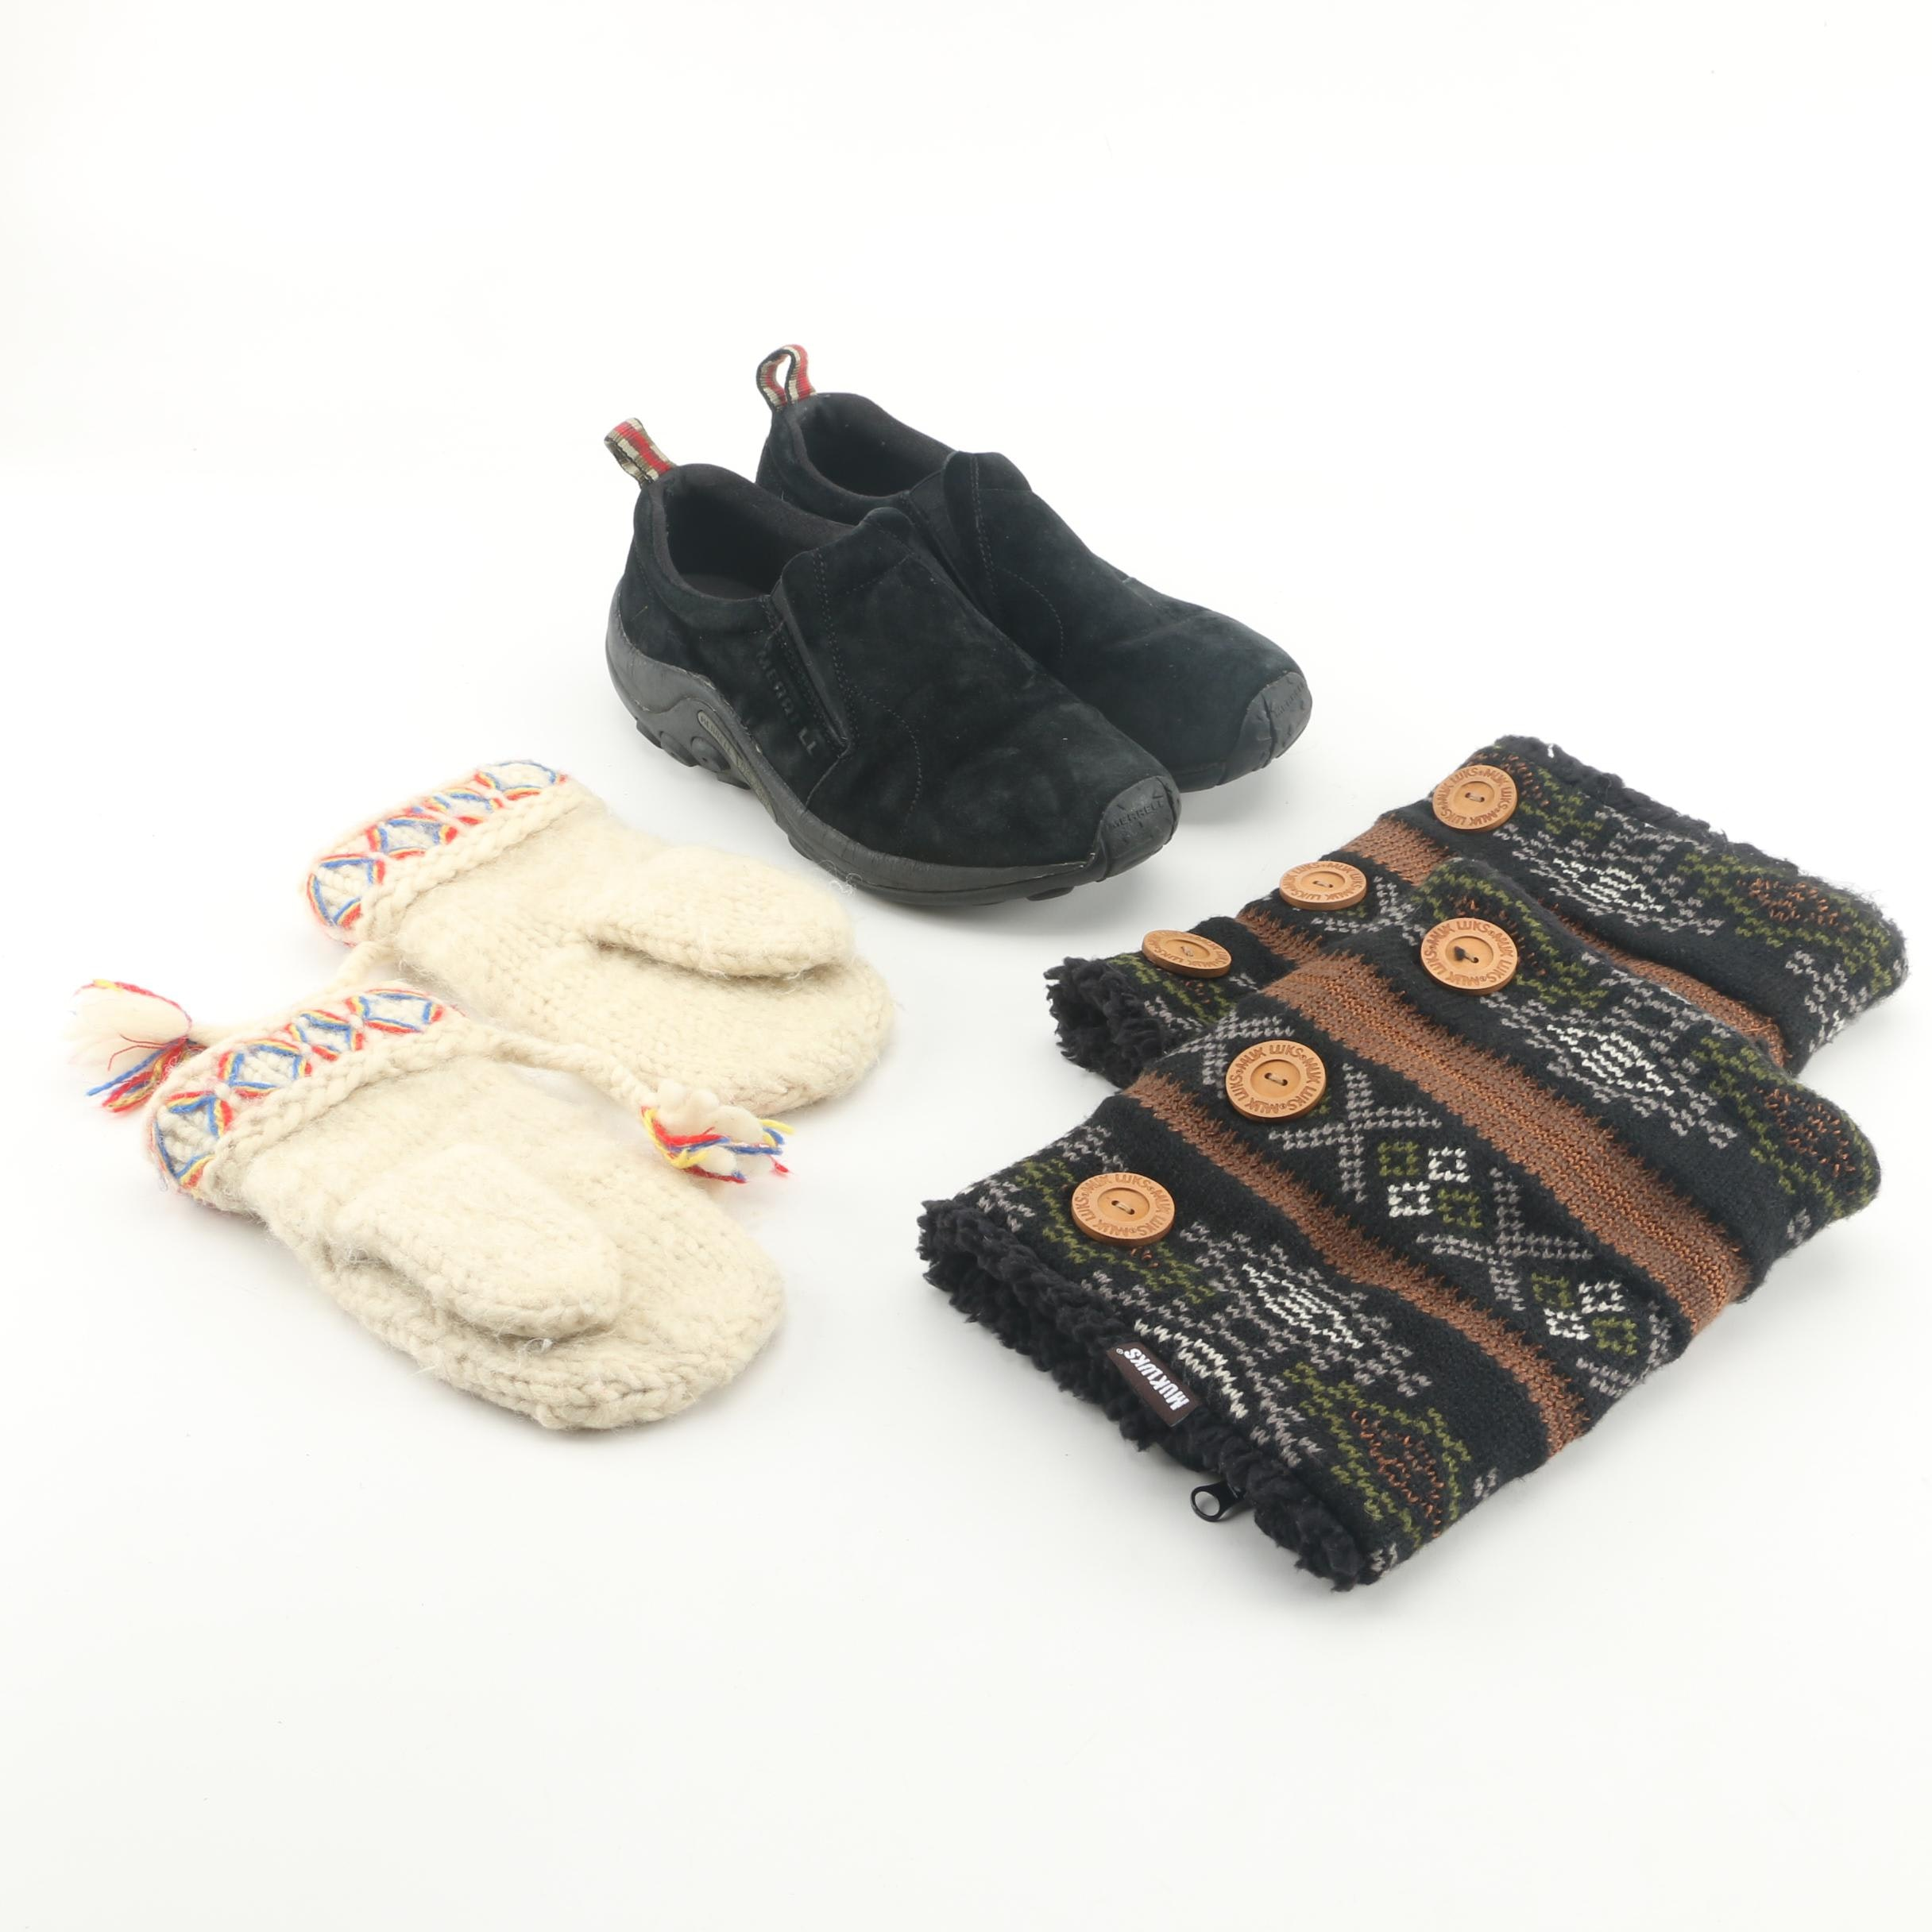 Merrell Jungle Mocs with Muk Luk Boot Covers and Knit Wool Mittens